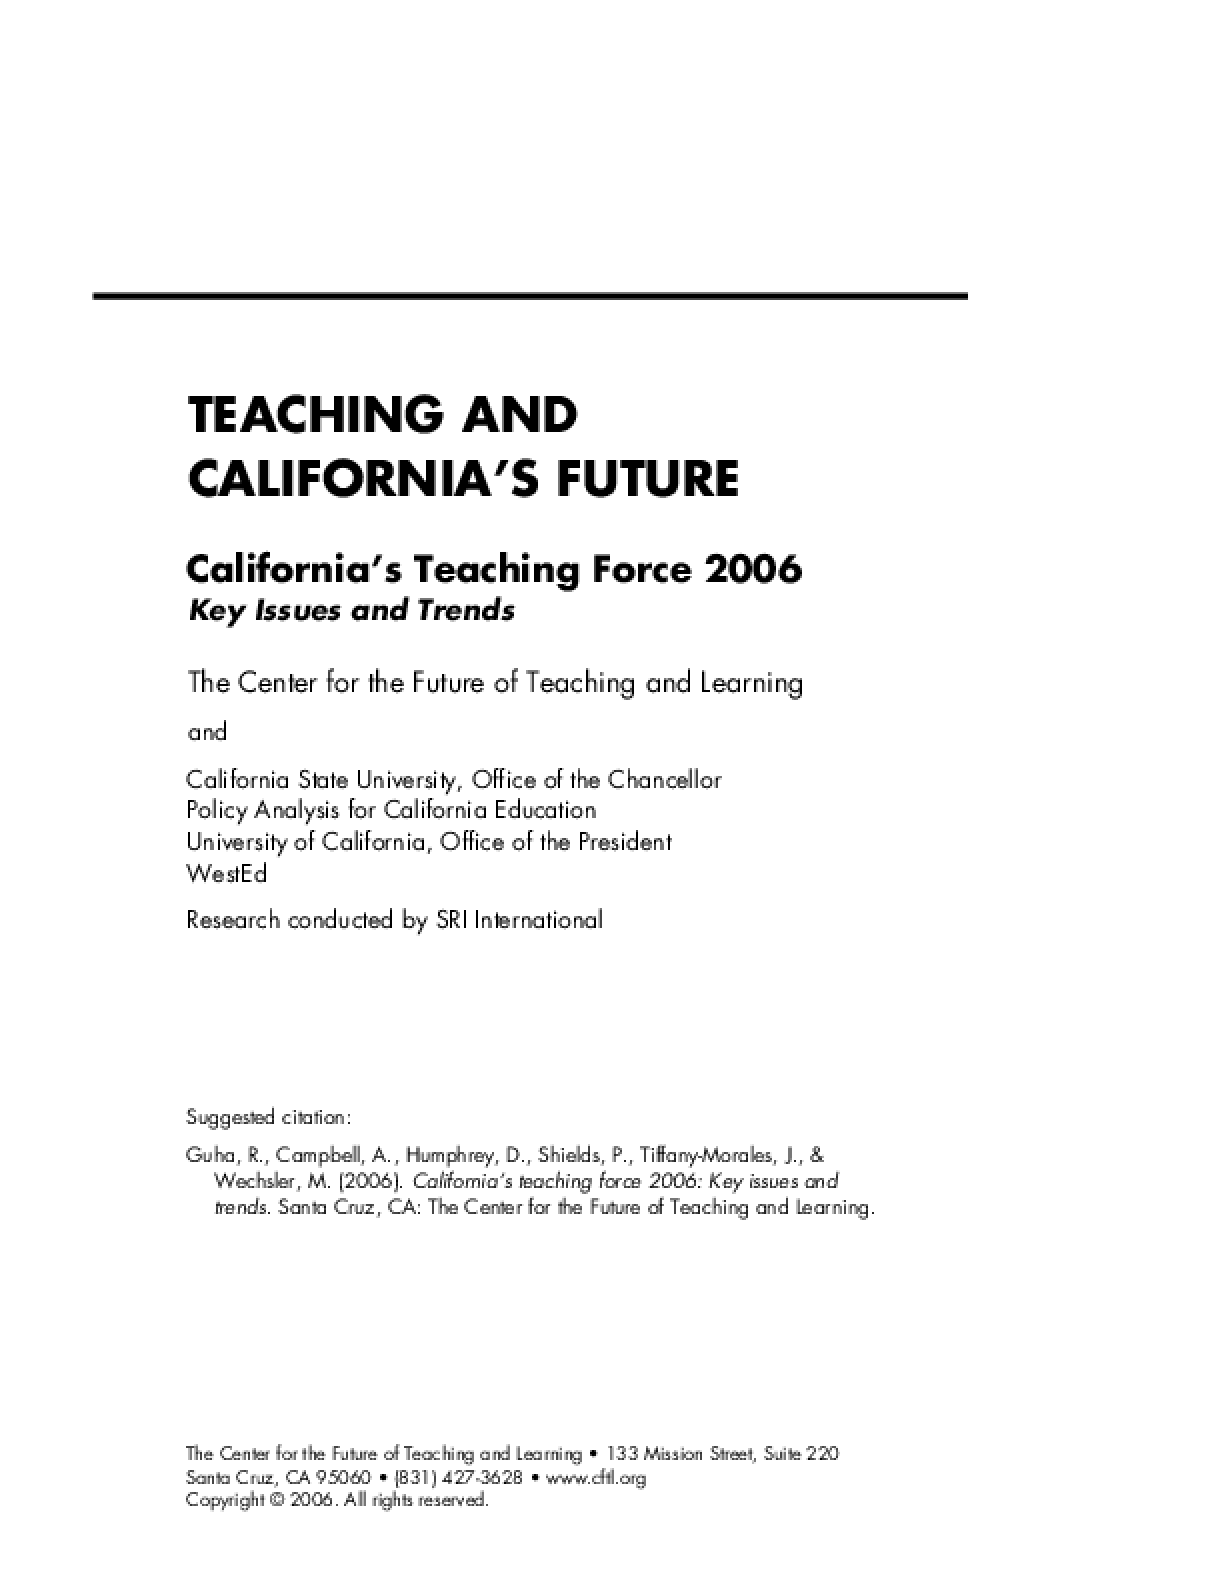 California's Teaching Force 2006: Key Issues and Trends (Report)